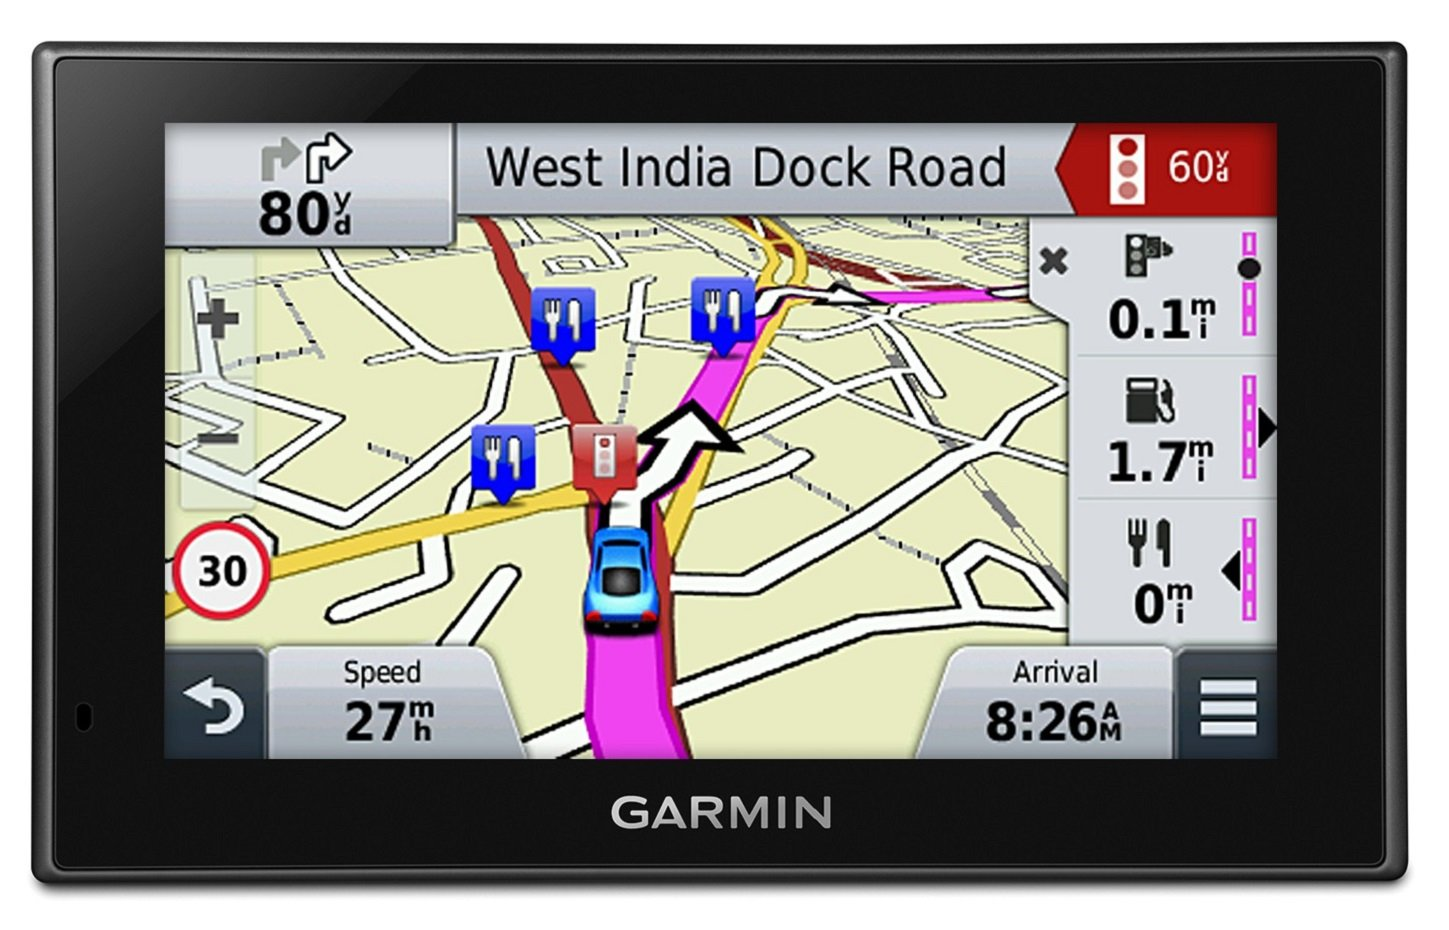 Garmin Nuvi 2599LMT-D Sat Nav Free Lifetime Map Updates for UK and Full Europe, Digital Traffic and Bluetooth 5 inch